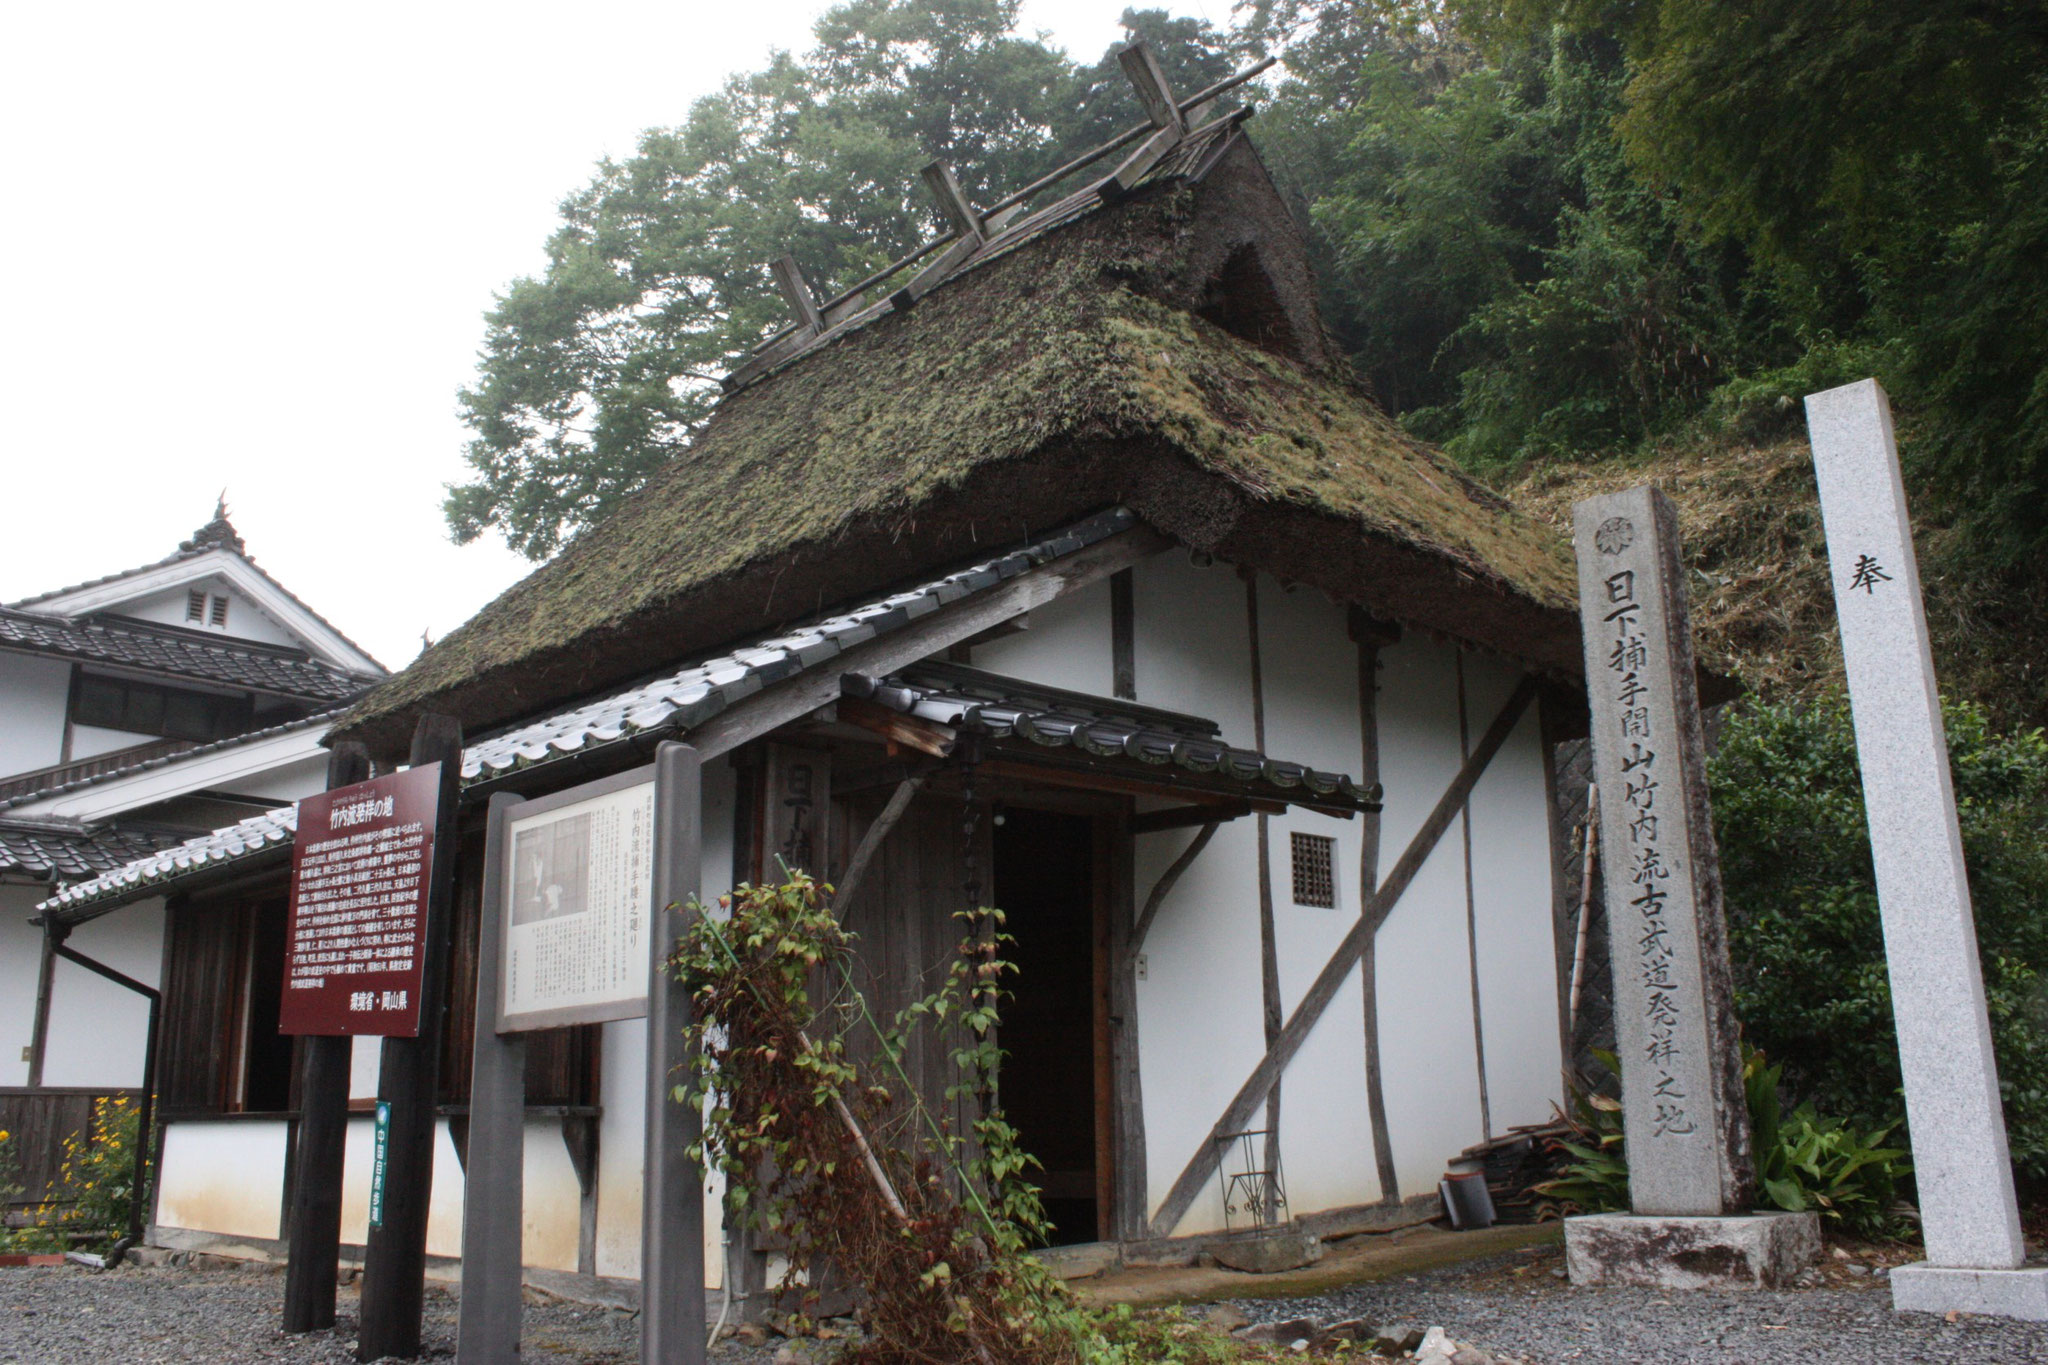 The current Dojo was built in 1664.